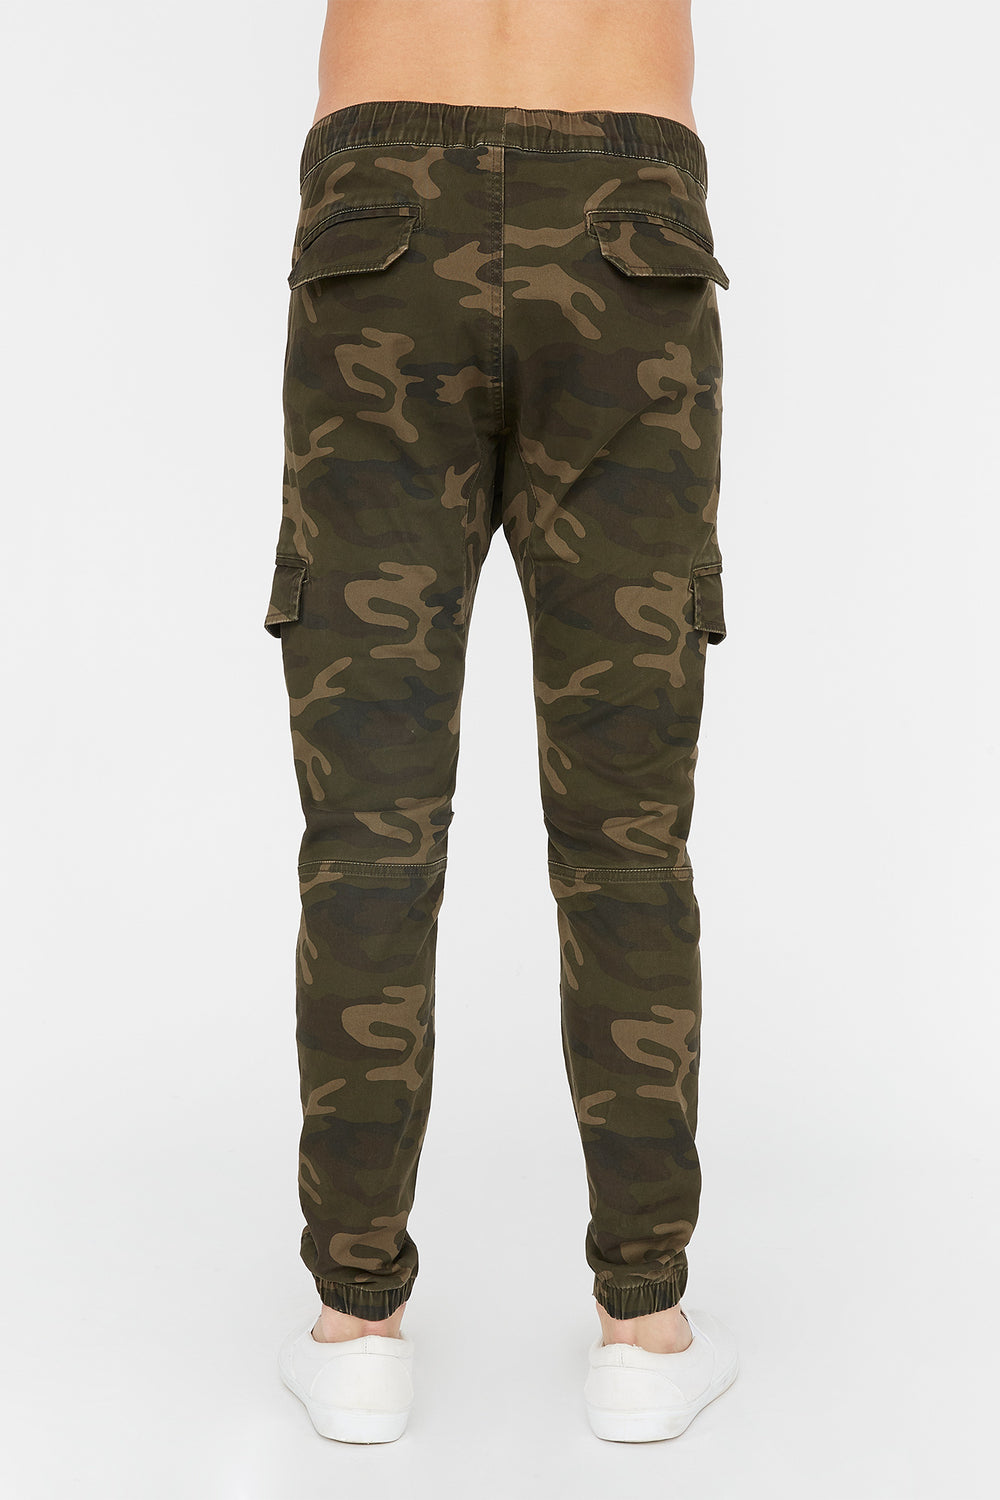 Jogger Camouflage Style Cargo West49 Homme Camoufle